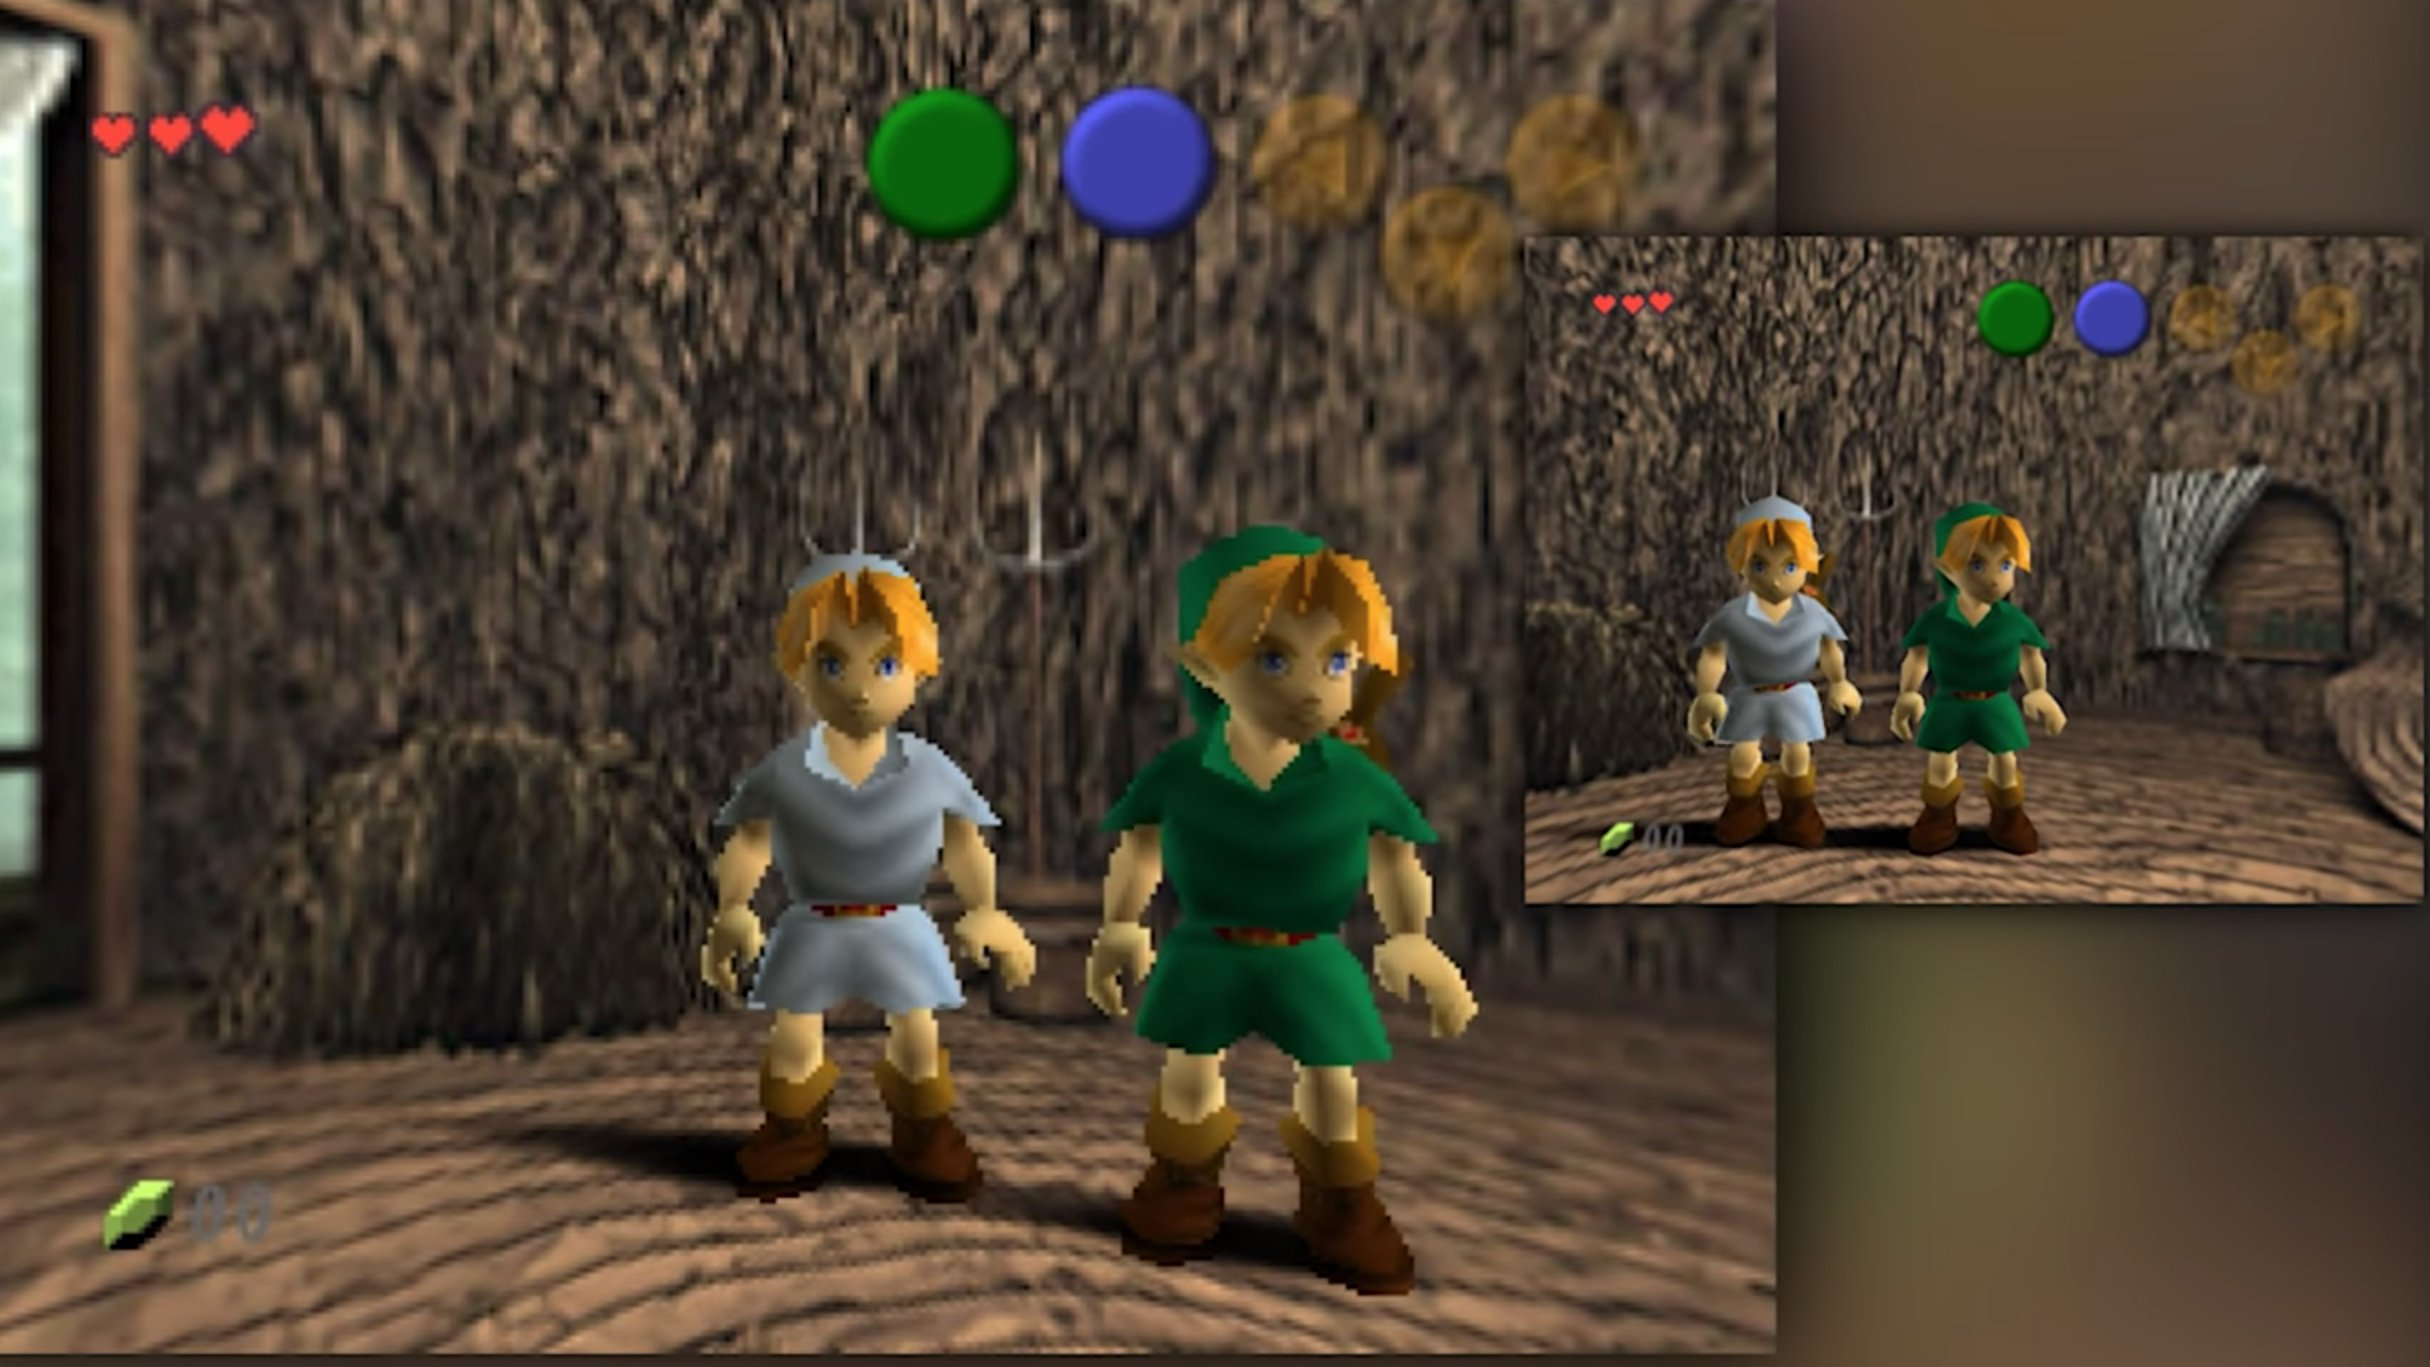 Zelda: Ocarina Of Time Mod Adds Online Co-Op - Nintendo Life